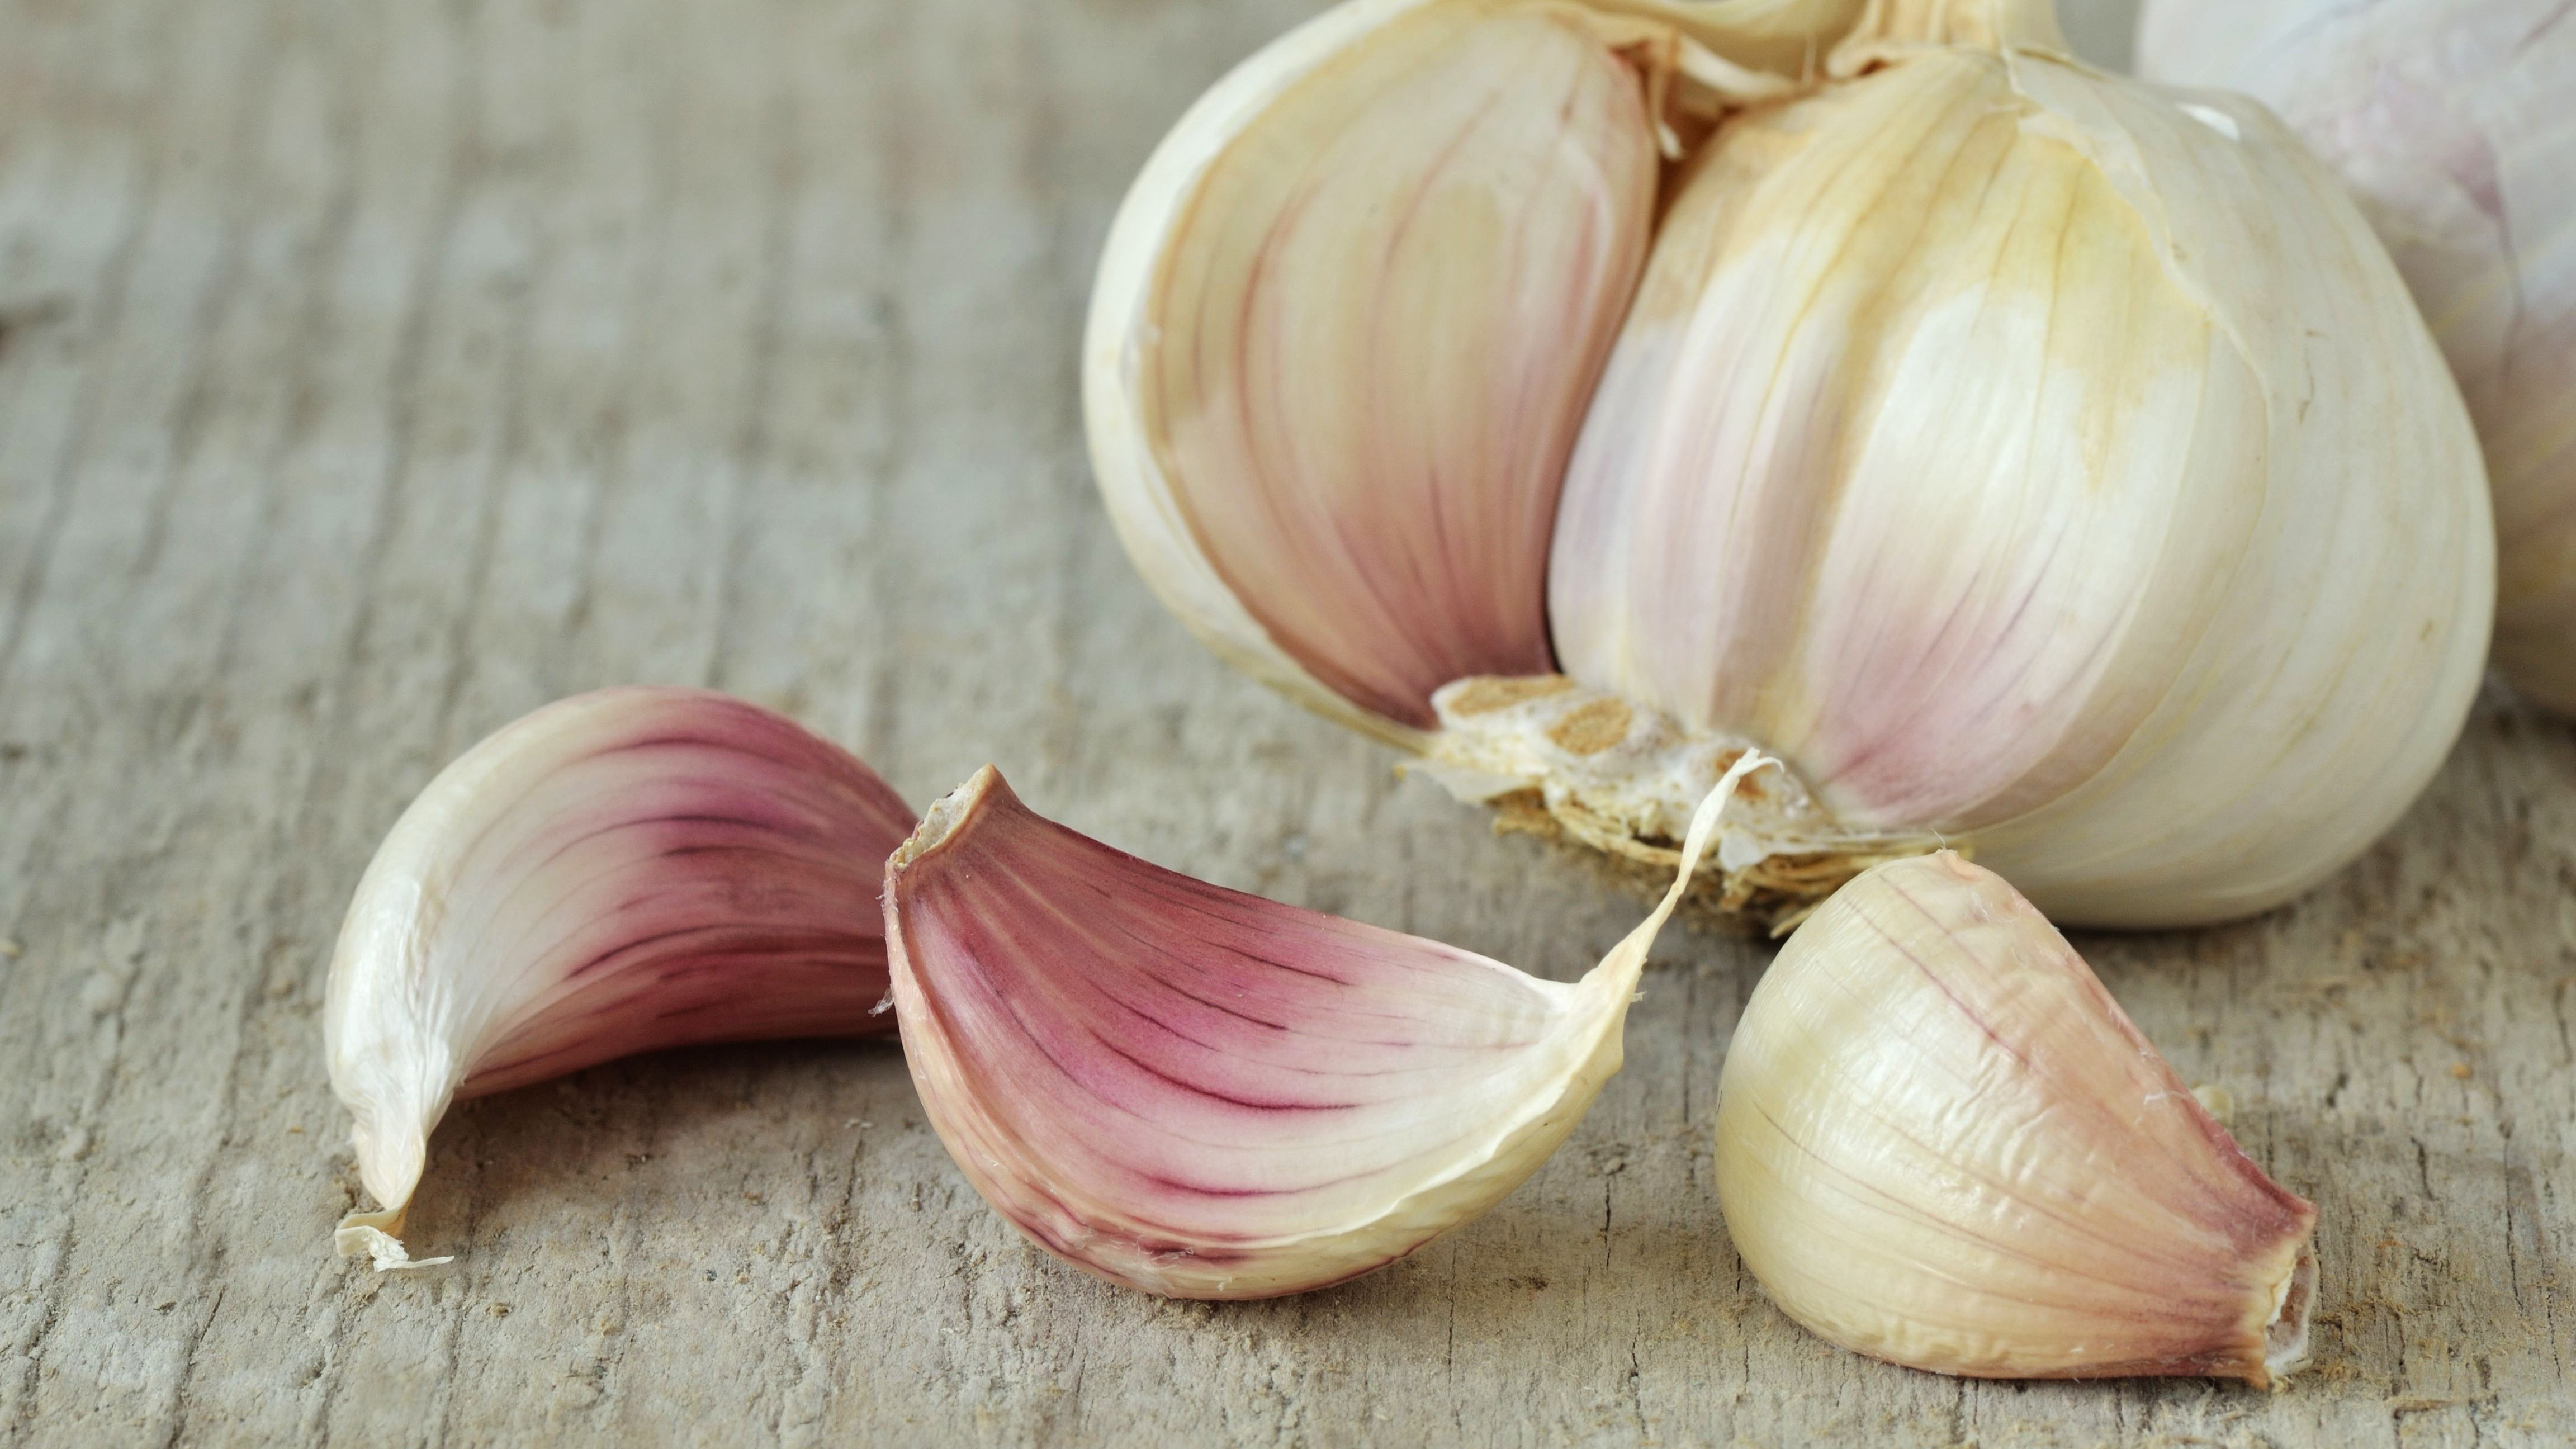 5 Swaps for Fresh Garlic Cloves  Natural remedies for pimples close up of garlic on table 760254411 5bcbf91c4cedfd0026f2b89d